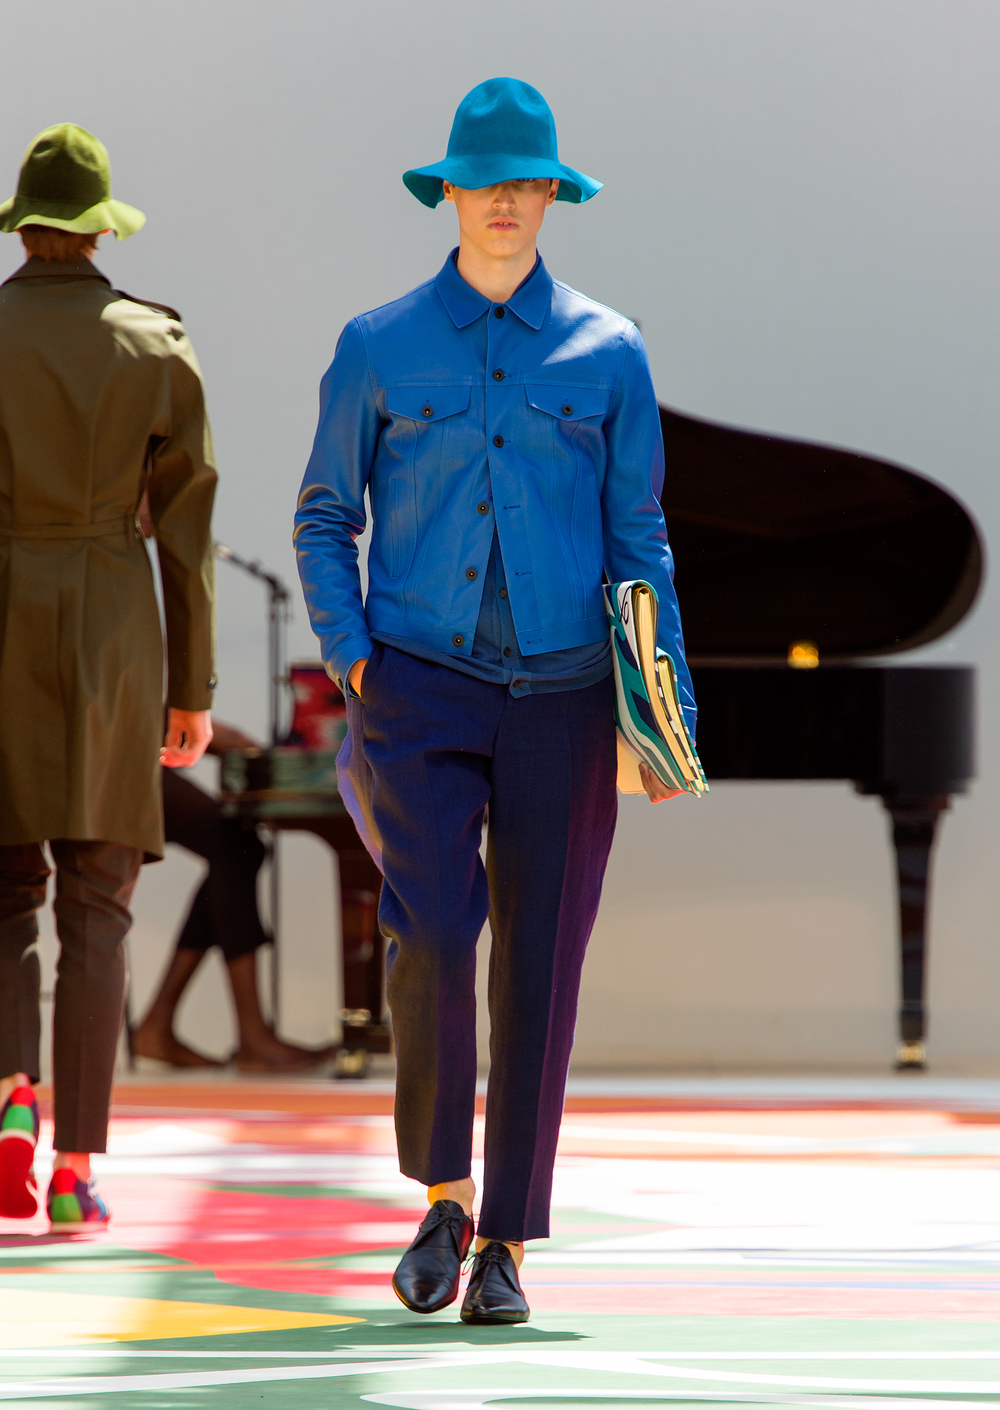 Burberry Prorsum Menswear Spring Summer 2015 Collection - Look 32.jpg